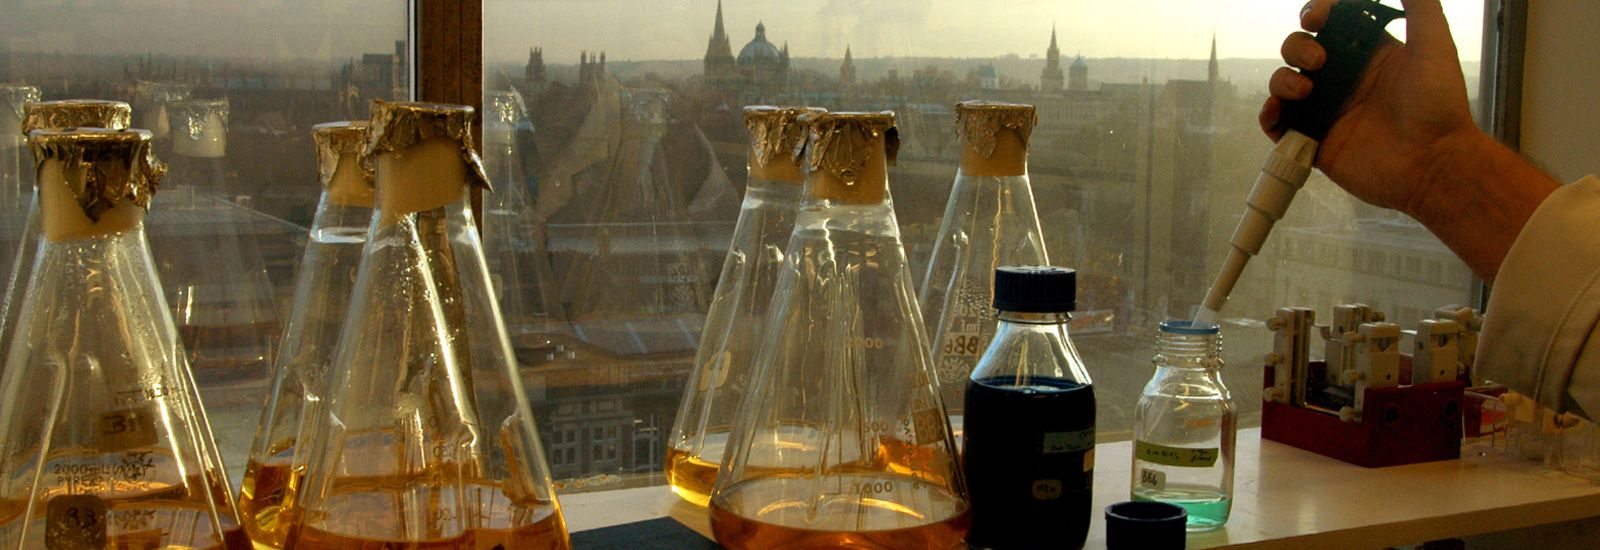 Conical flasks in a Chemistry lab in front of a window overlooking Oxford city centre